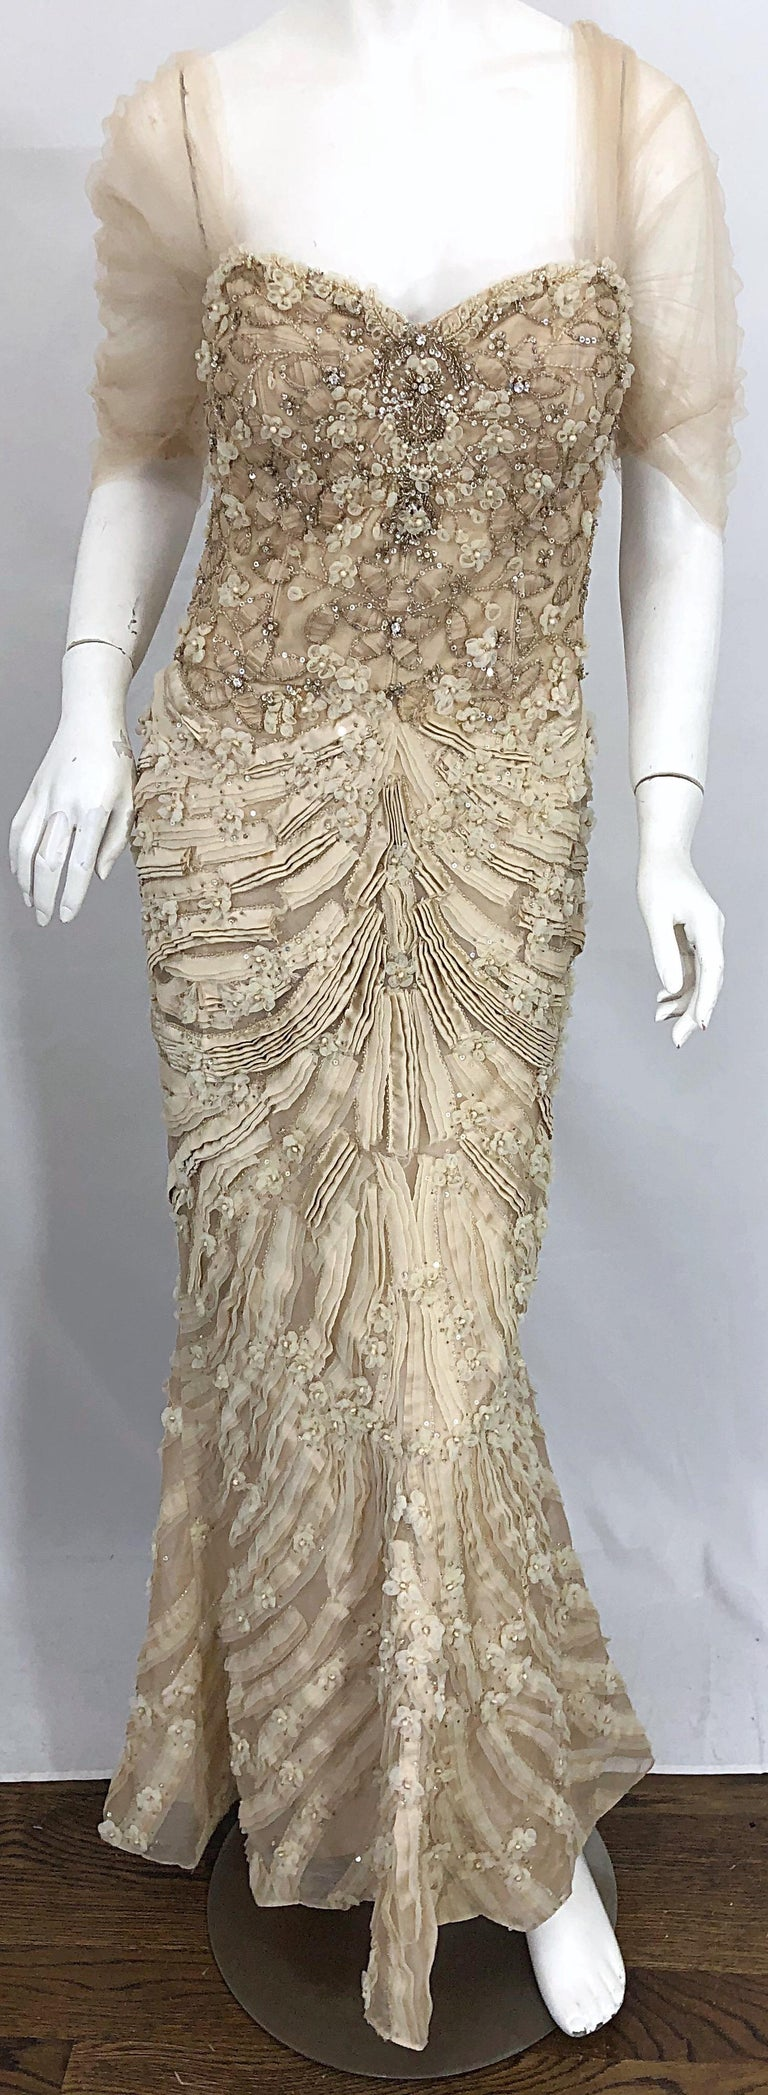 Monique Lhuillier Couture Size 10 / 12 Beige Rhinestone Beaded $12,000 Silk Gown For Sale 4